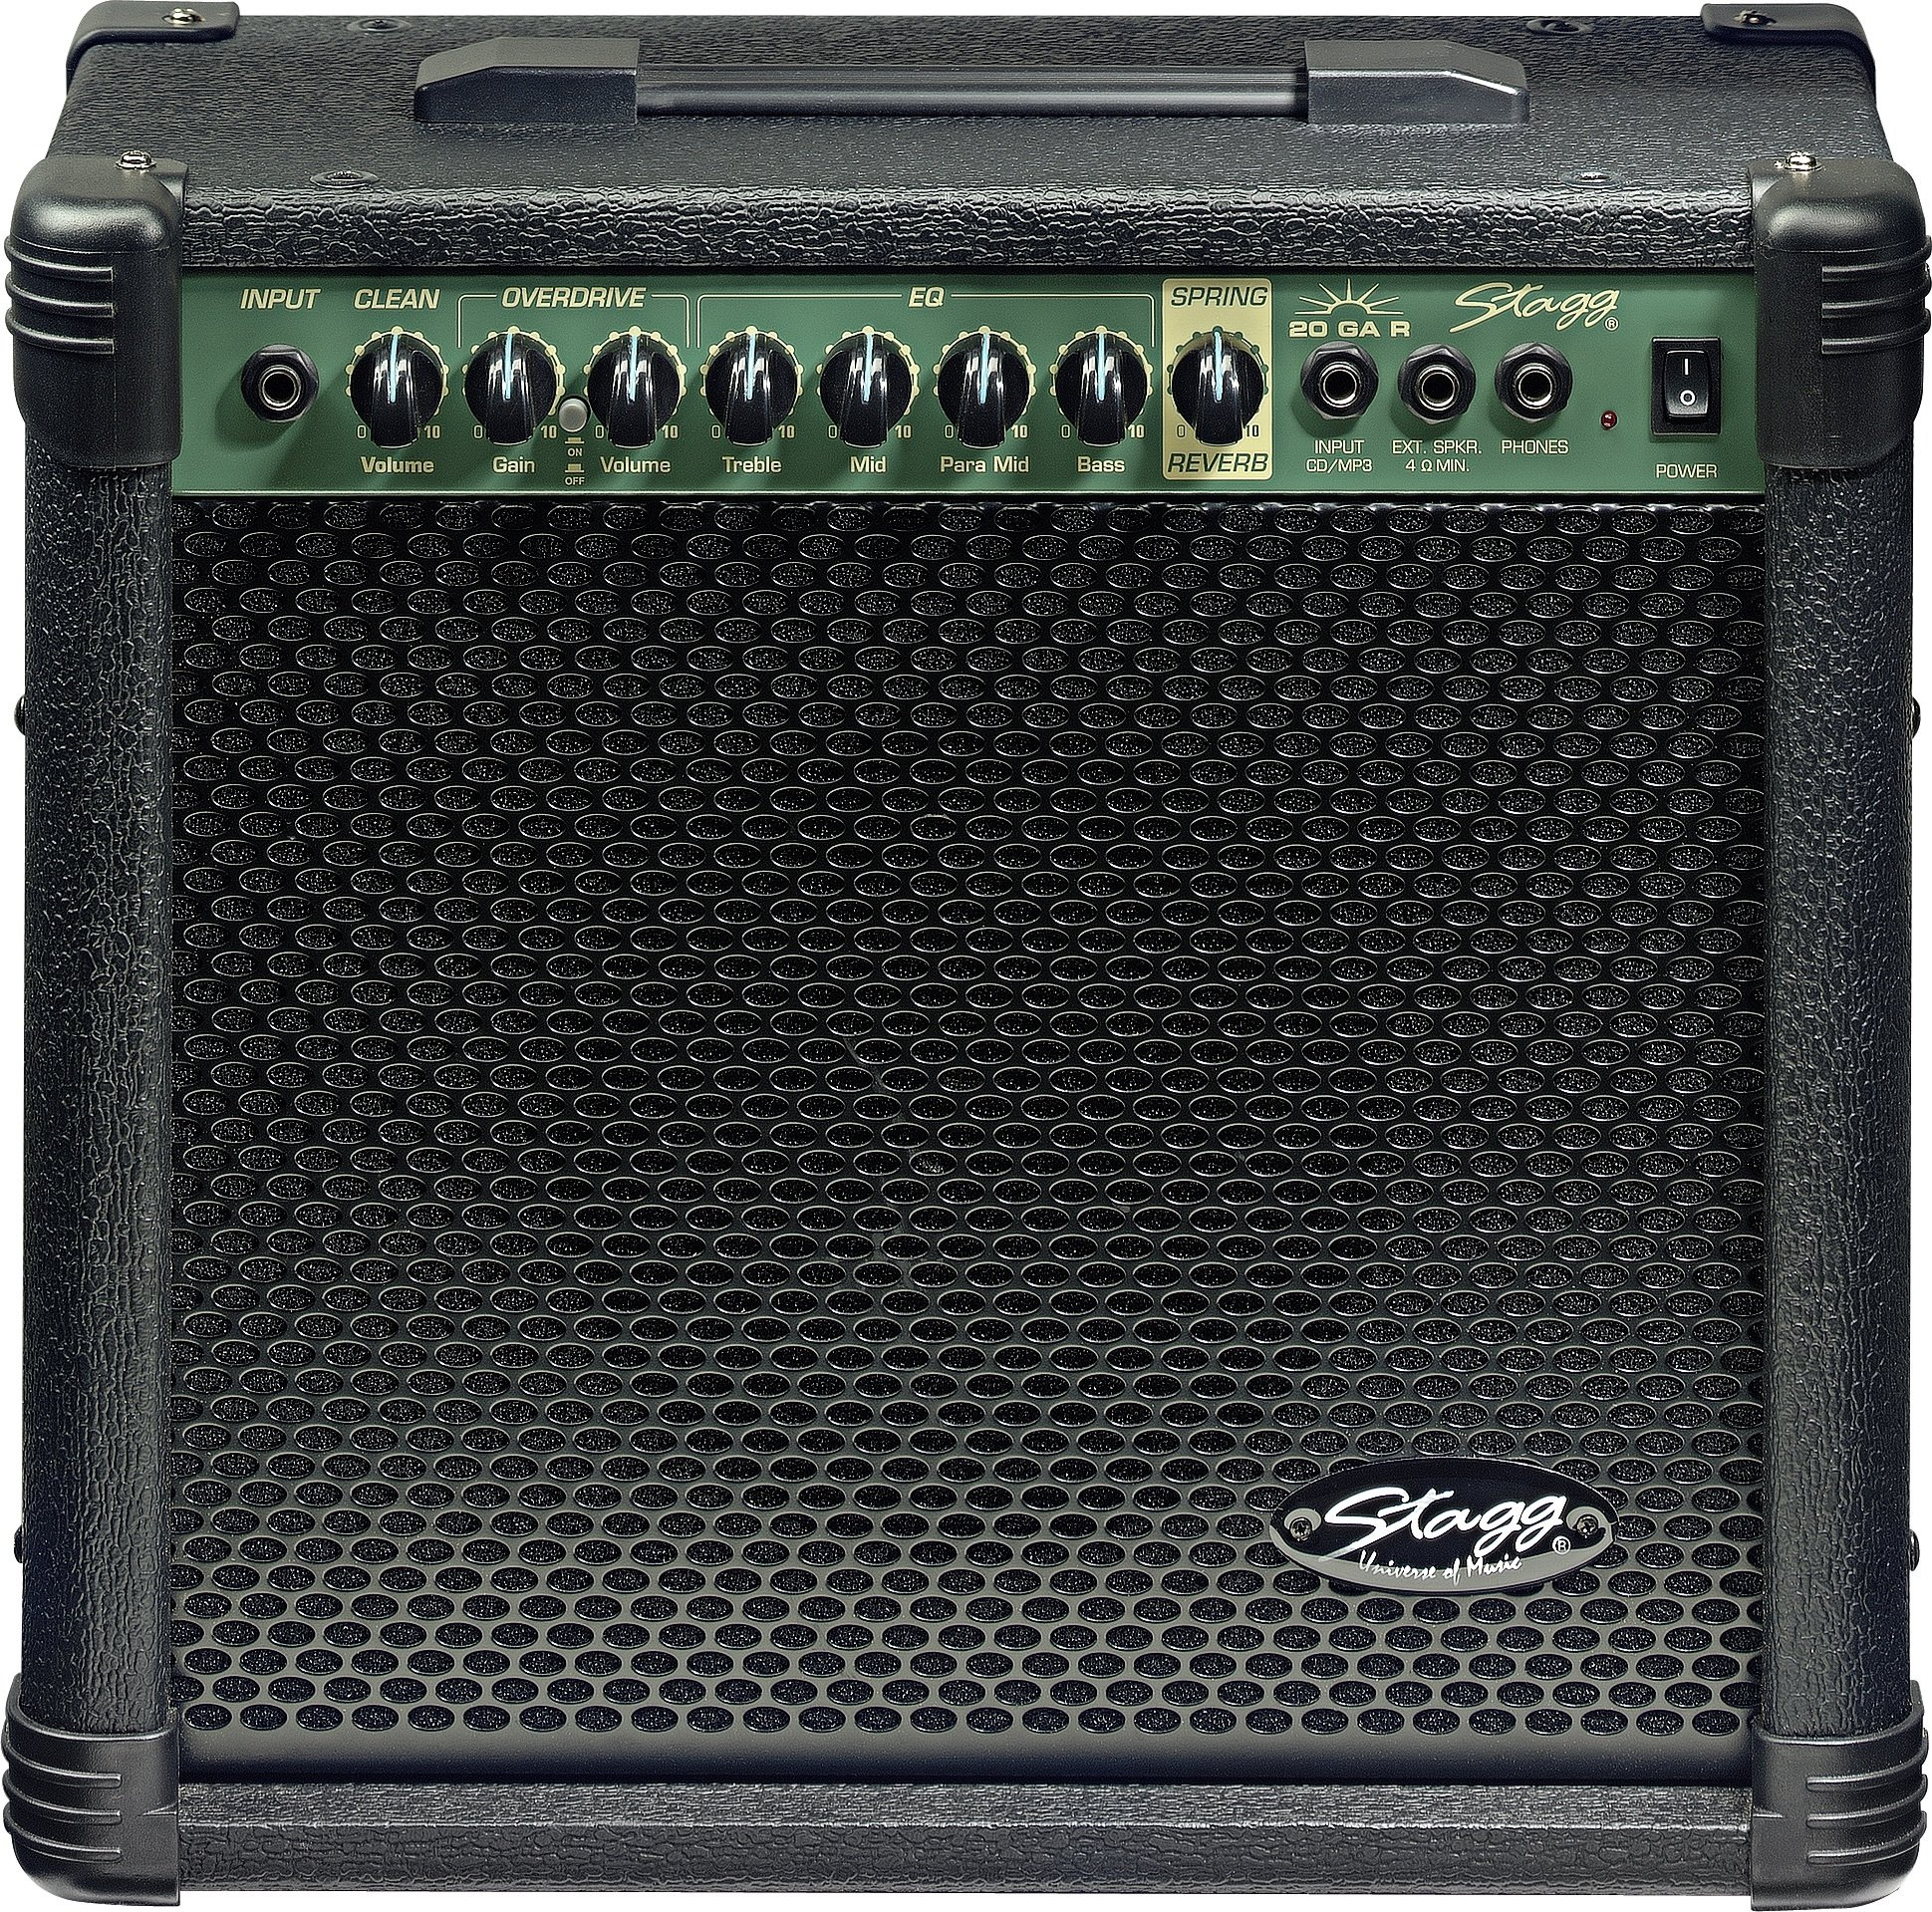 Stagg 20 GA R USA - 20-Watt Electric Guitar Amplifier with Spring Reverb 00142